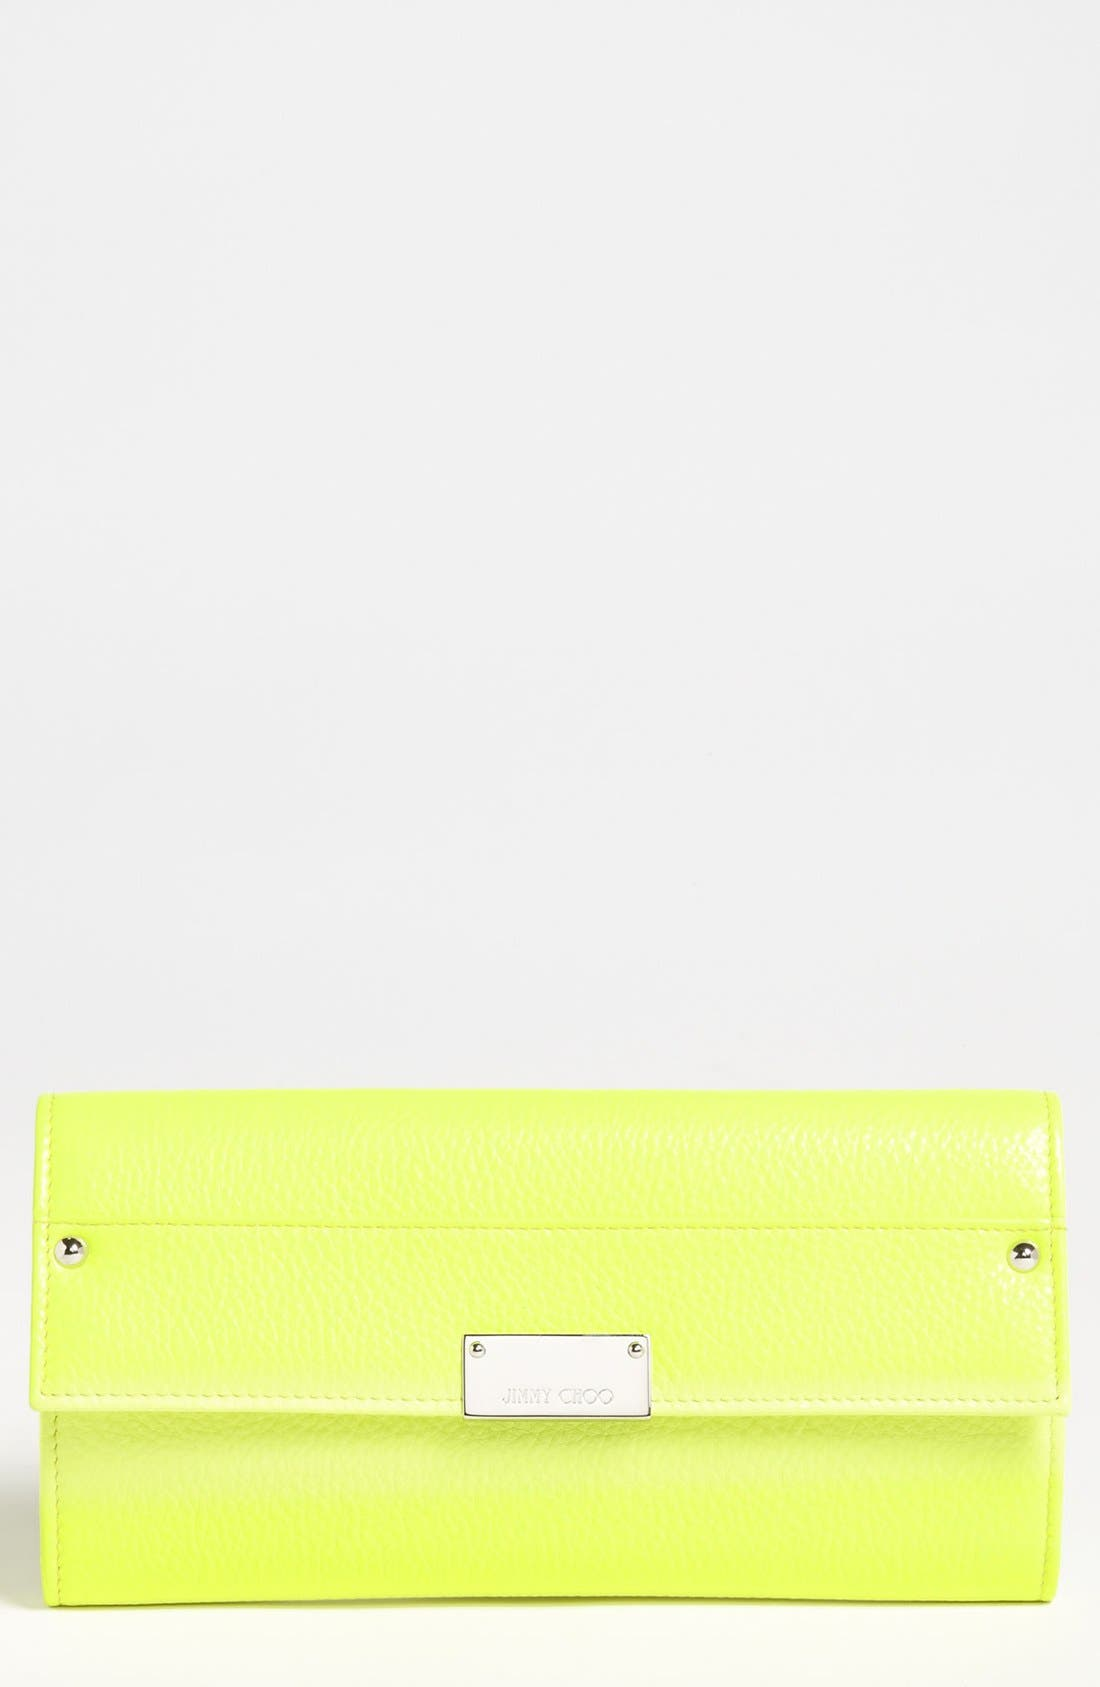 Main Image - Jimmy Choo 'Reese' Leather Clutch